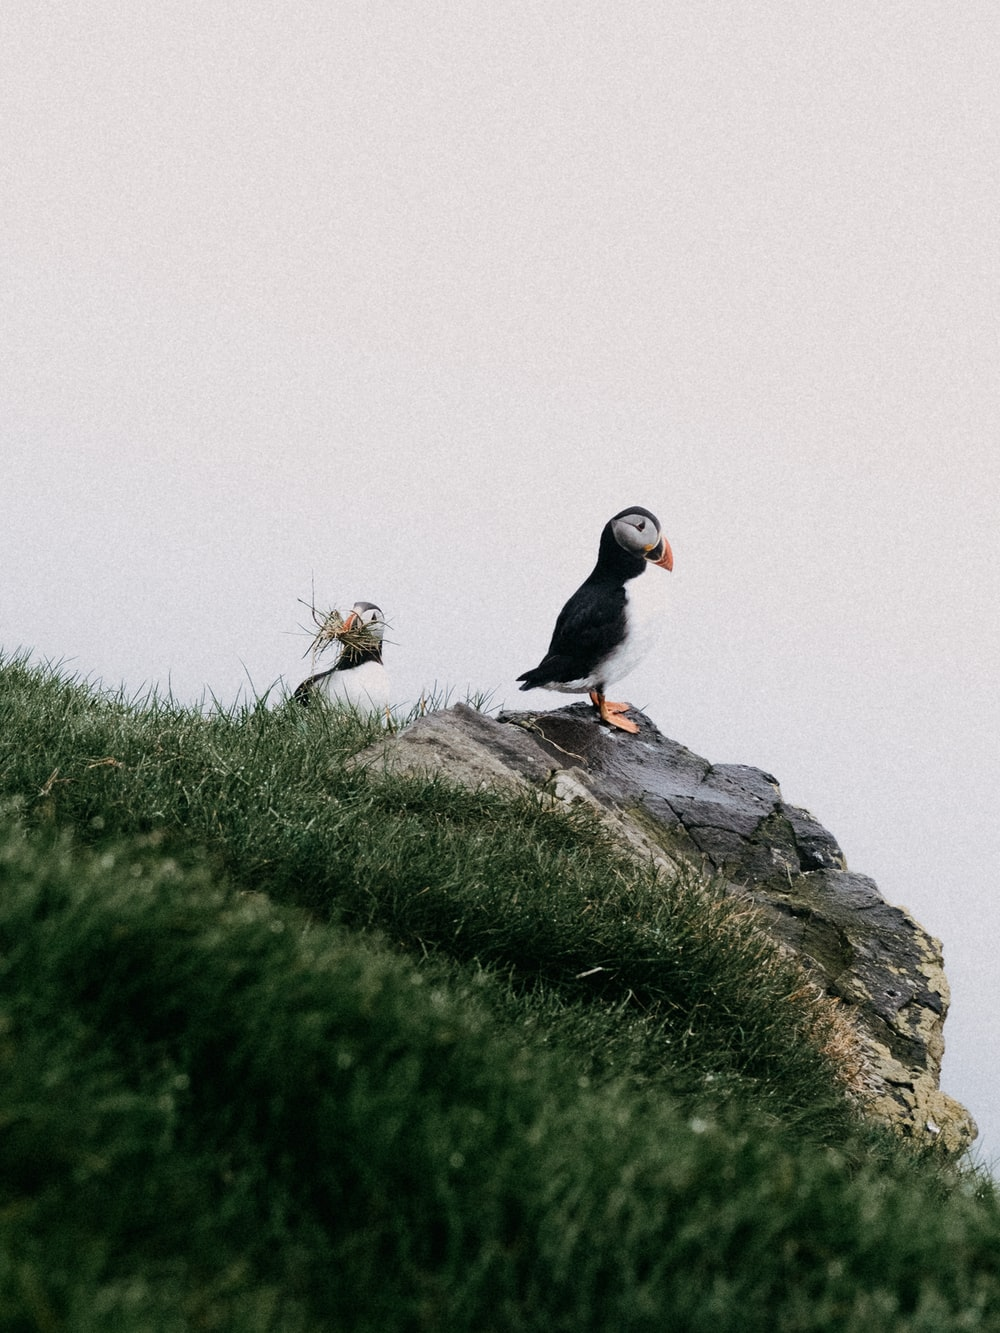 black and white bird on gray rock during daytime